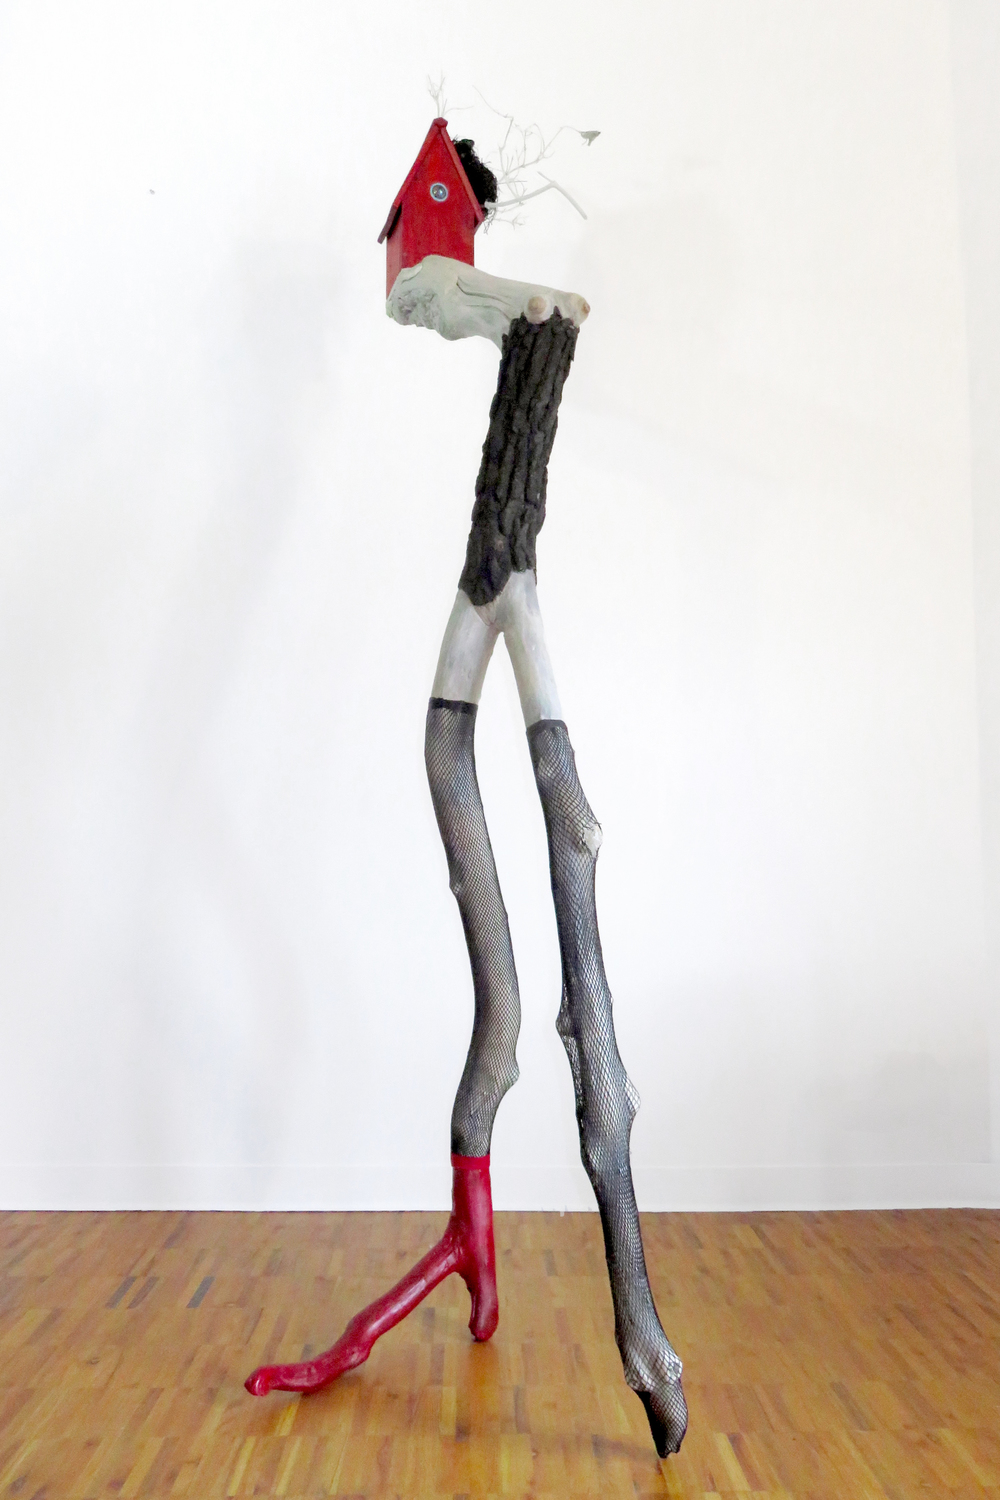 The Fascinator, 2015 Tree limbs, wood house, LED light, glass, bird's nest, nylon stockings, acrylic paints, wood stain, 96 x 30 x 32 inches